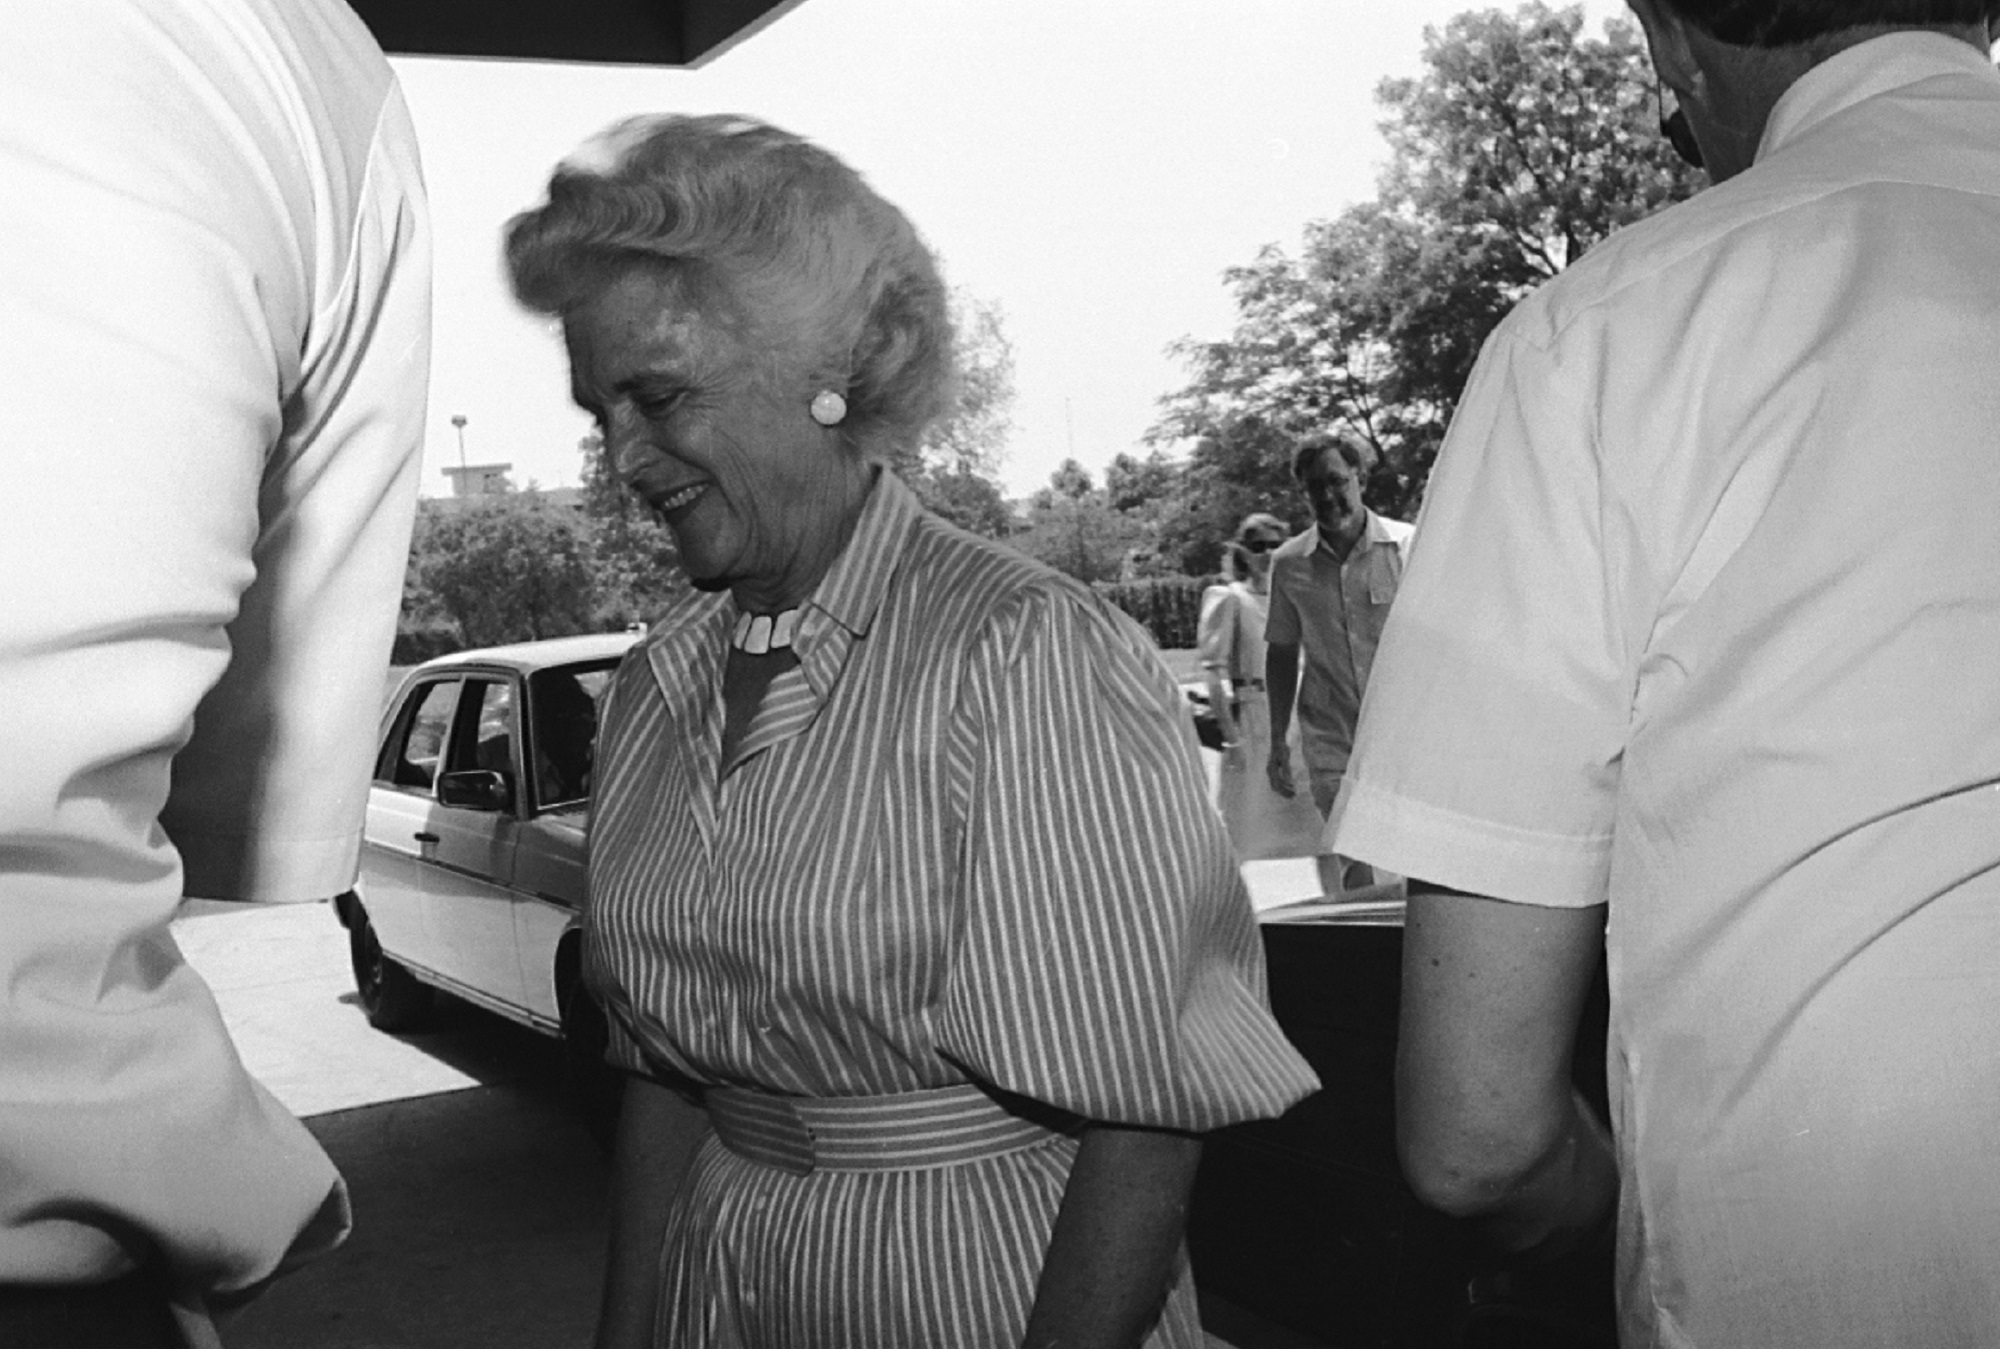 'She was this kind of person they don't make any more.' Friends, former staff remember Barbara Bush